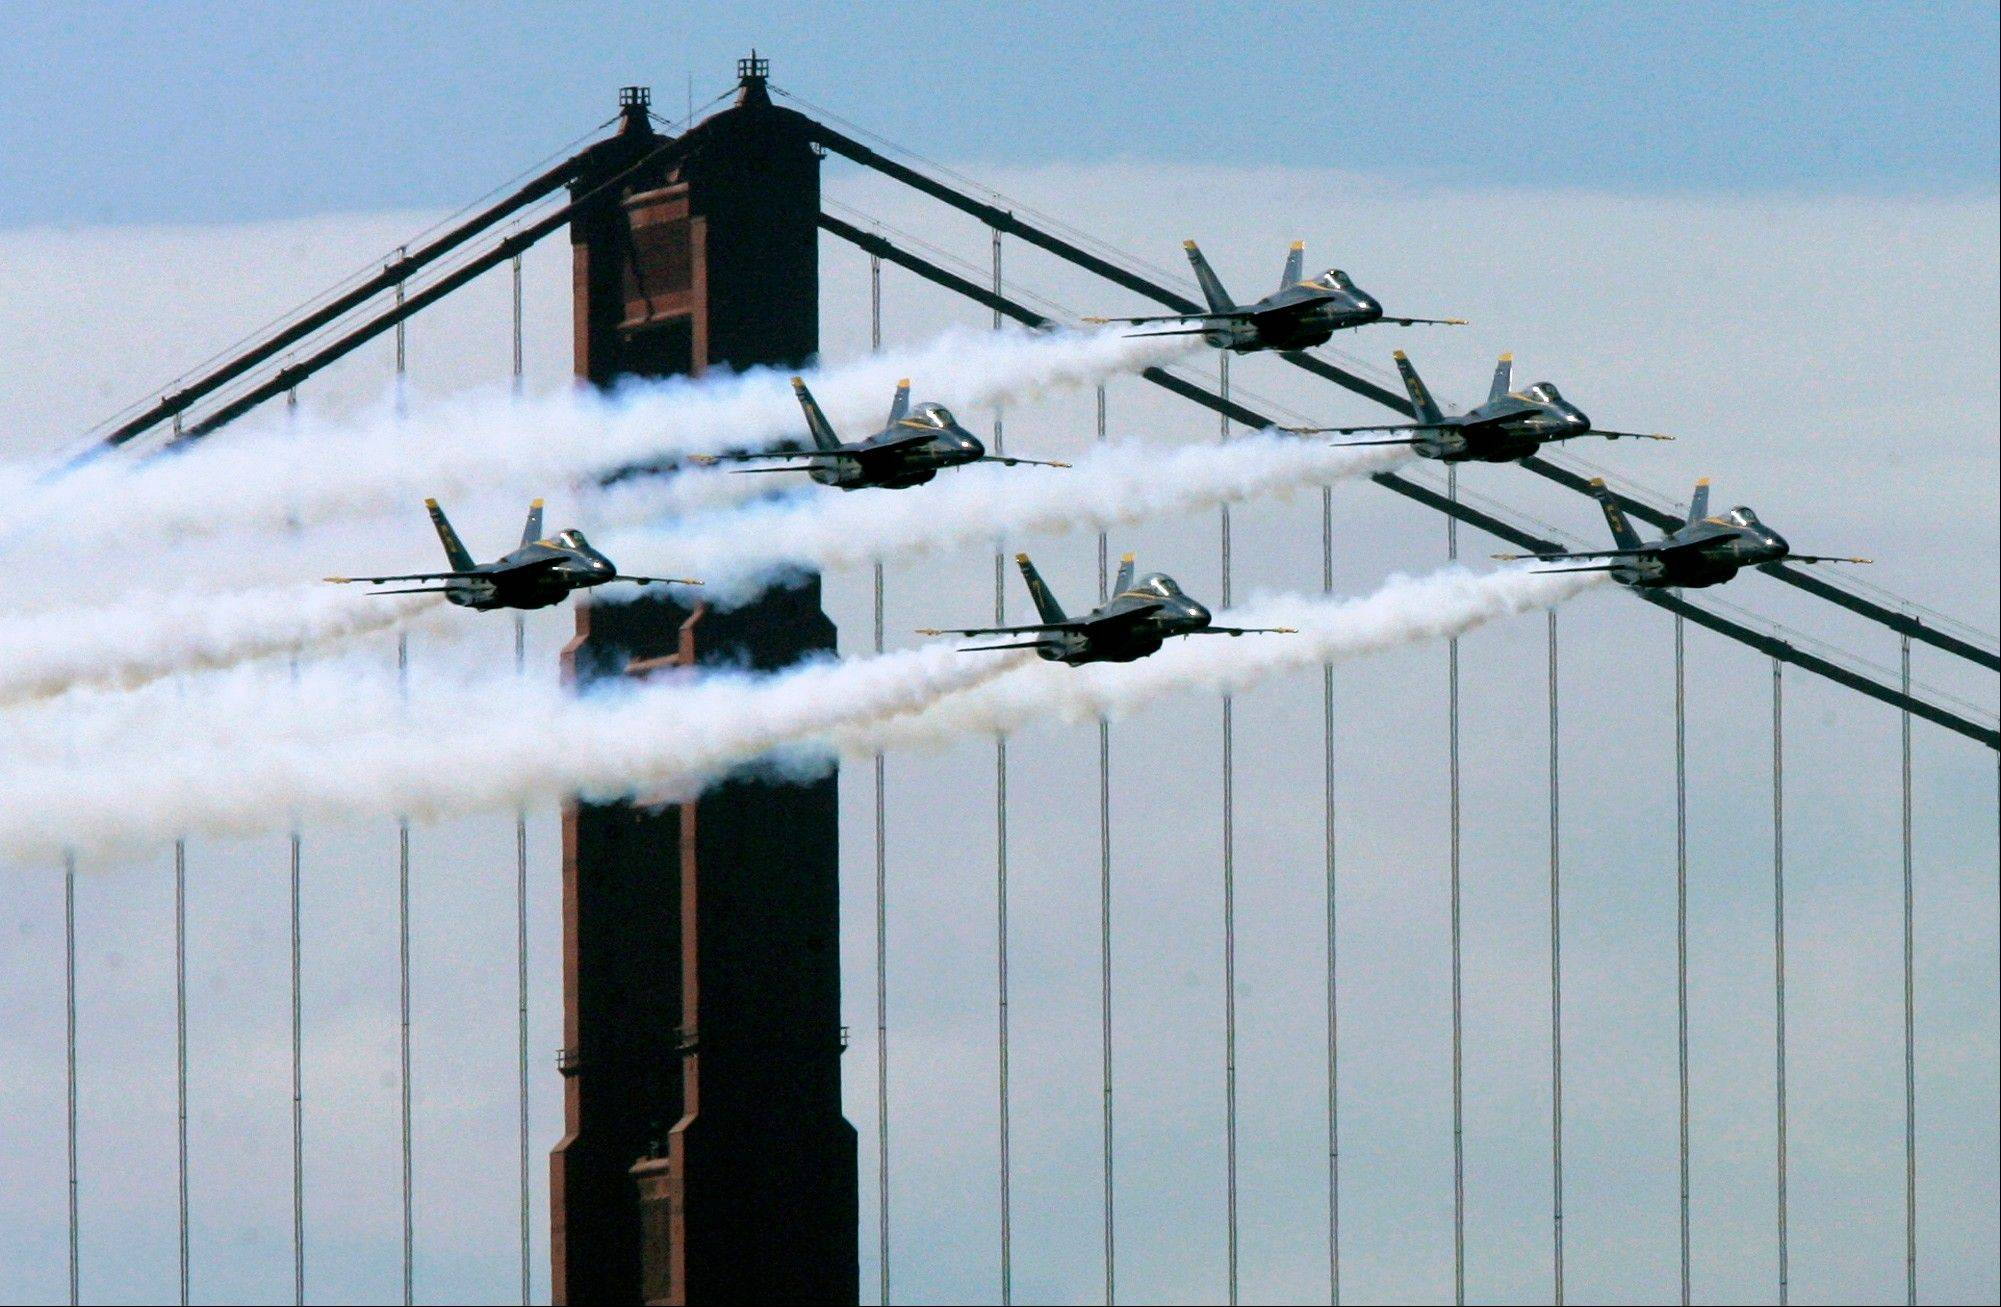 The U.S. Navy�s Blue Angels announced Tuesday the rest of its 2013 season is canceled because of federal budget cuts.